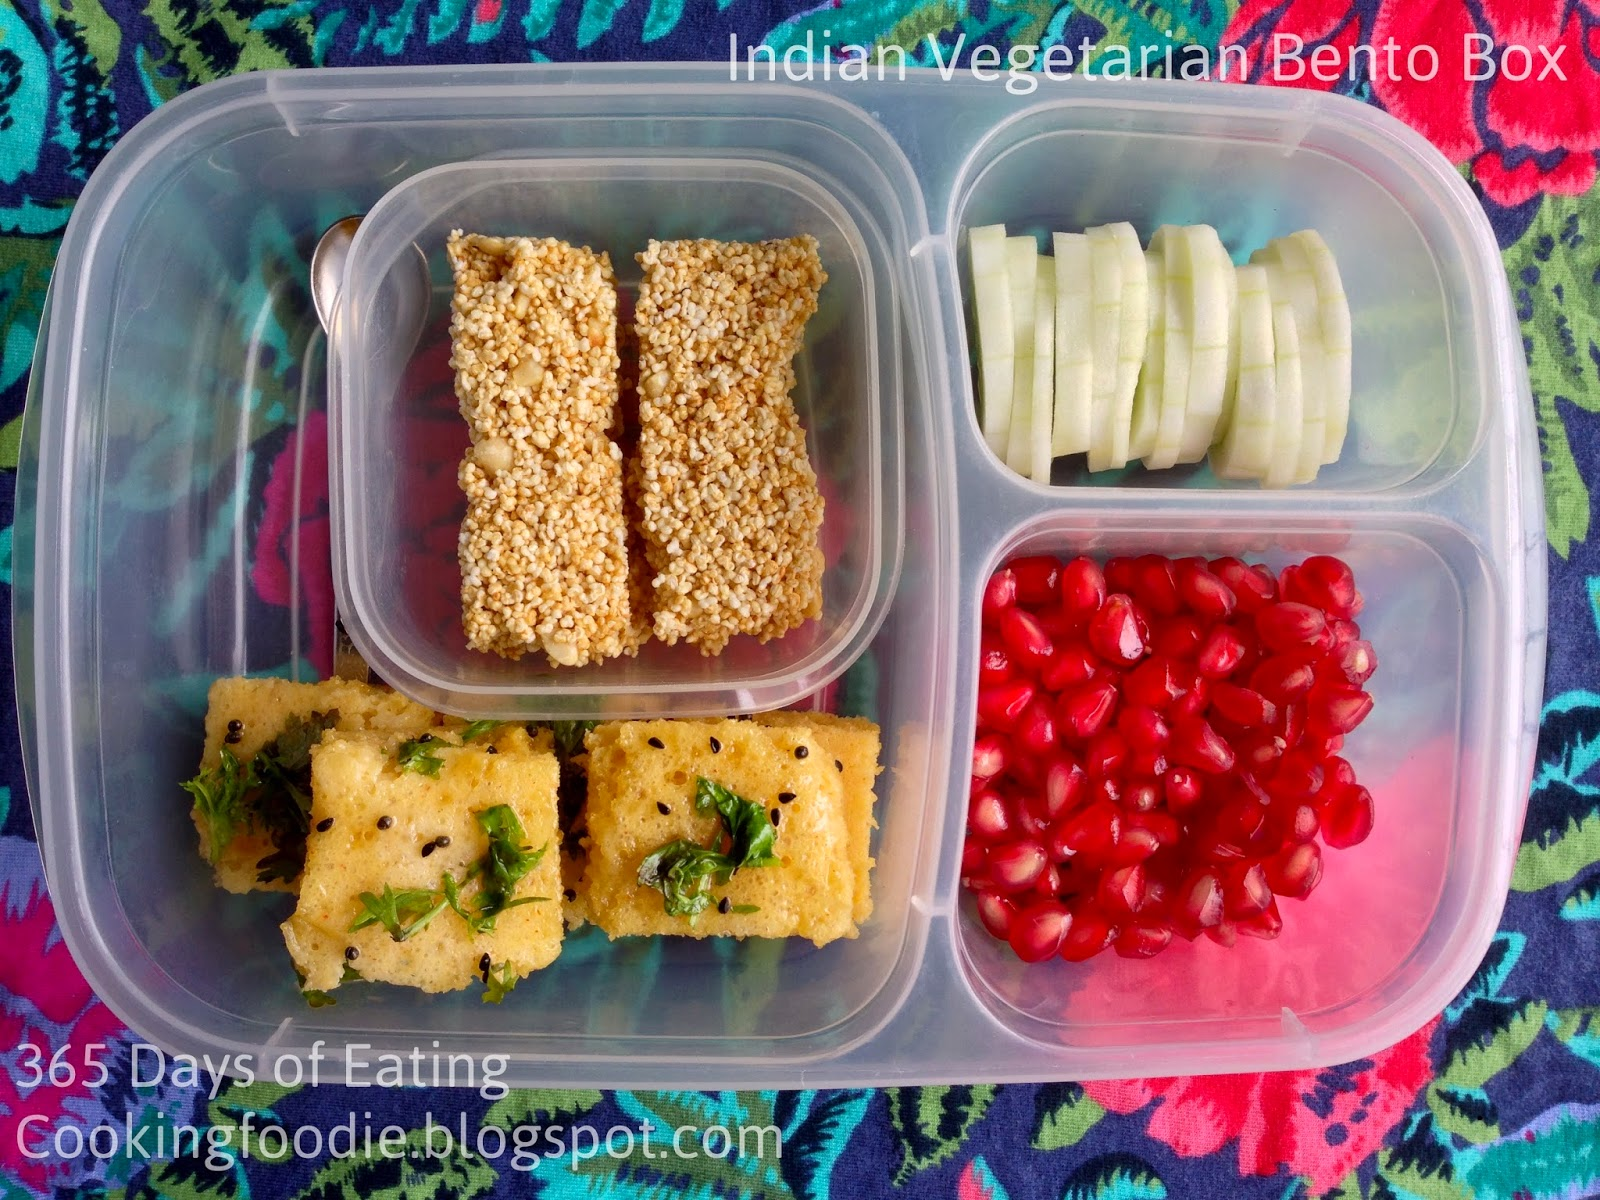 Kids special indian vegetarian bento box 1 365 days of eating kids special indian vegetarian bento box 1 forumfinder Choice Image